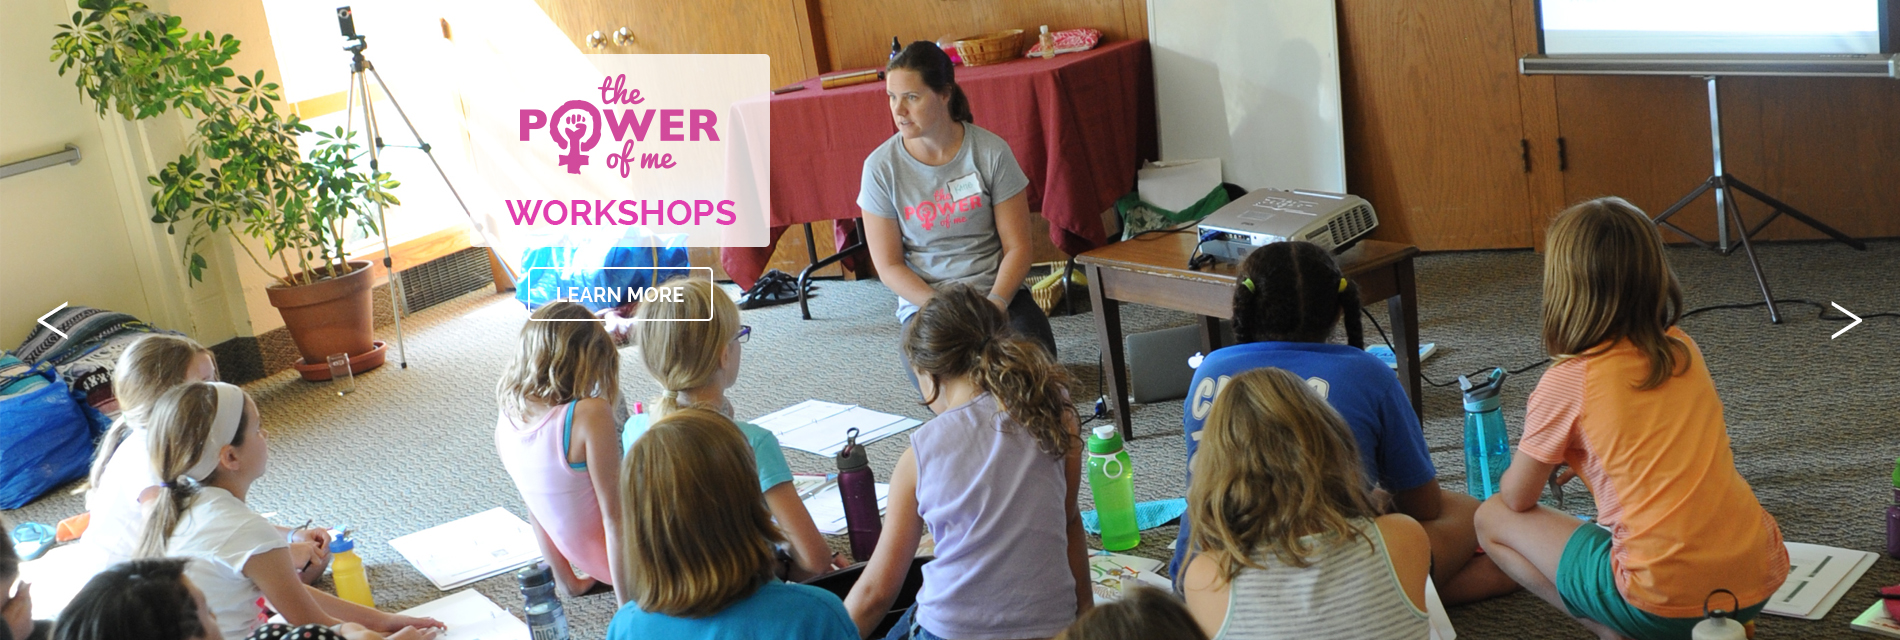 Mad Hatter Yoga & Wellness_slider 2